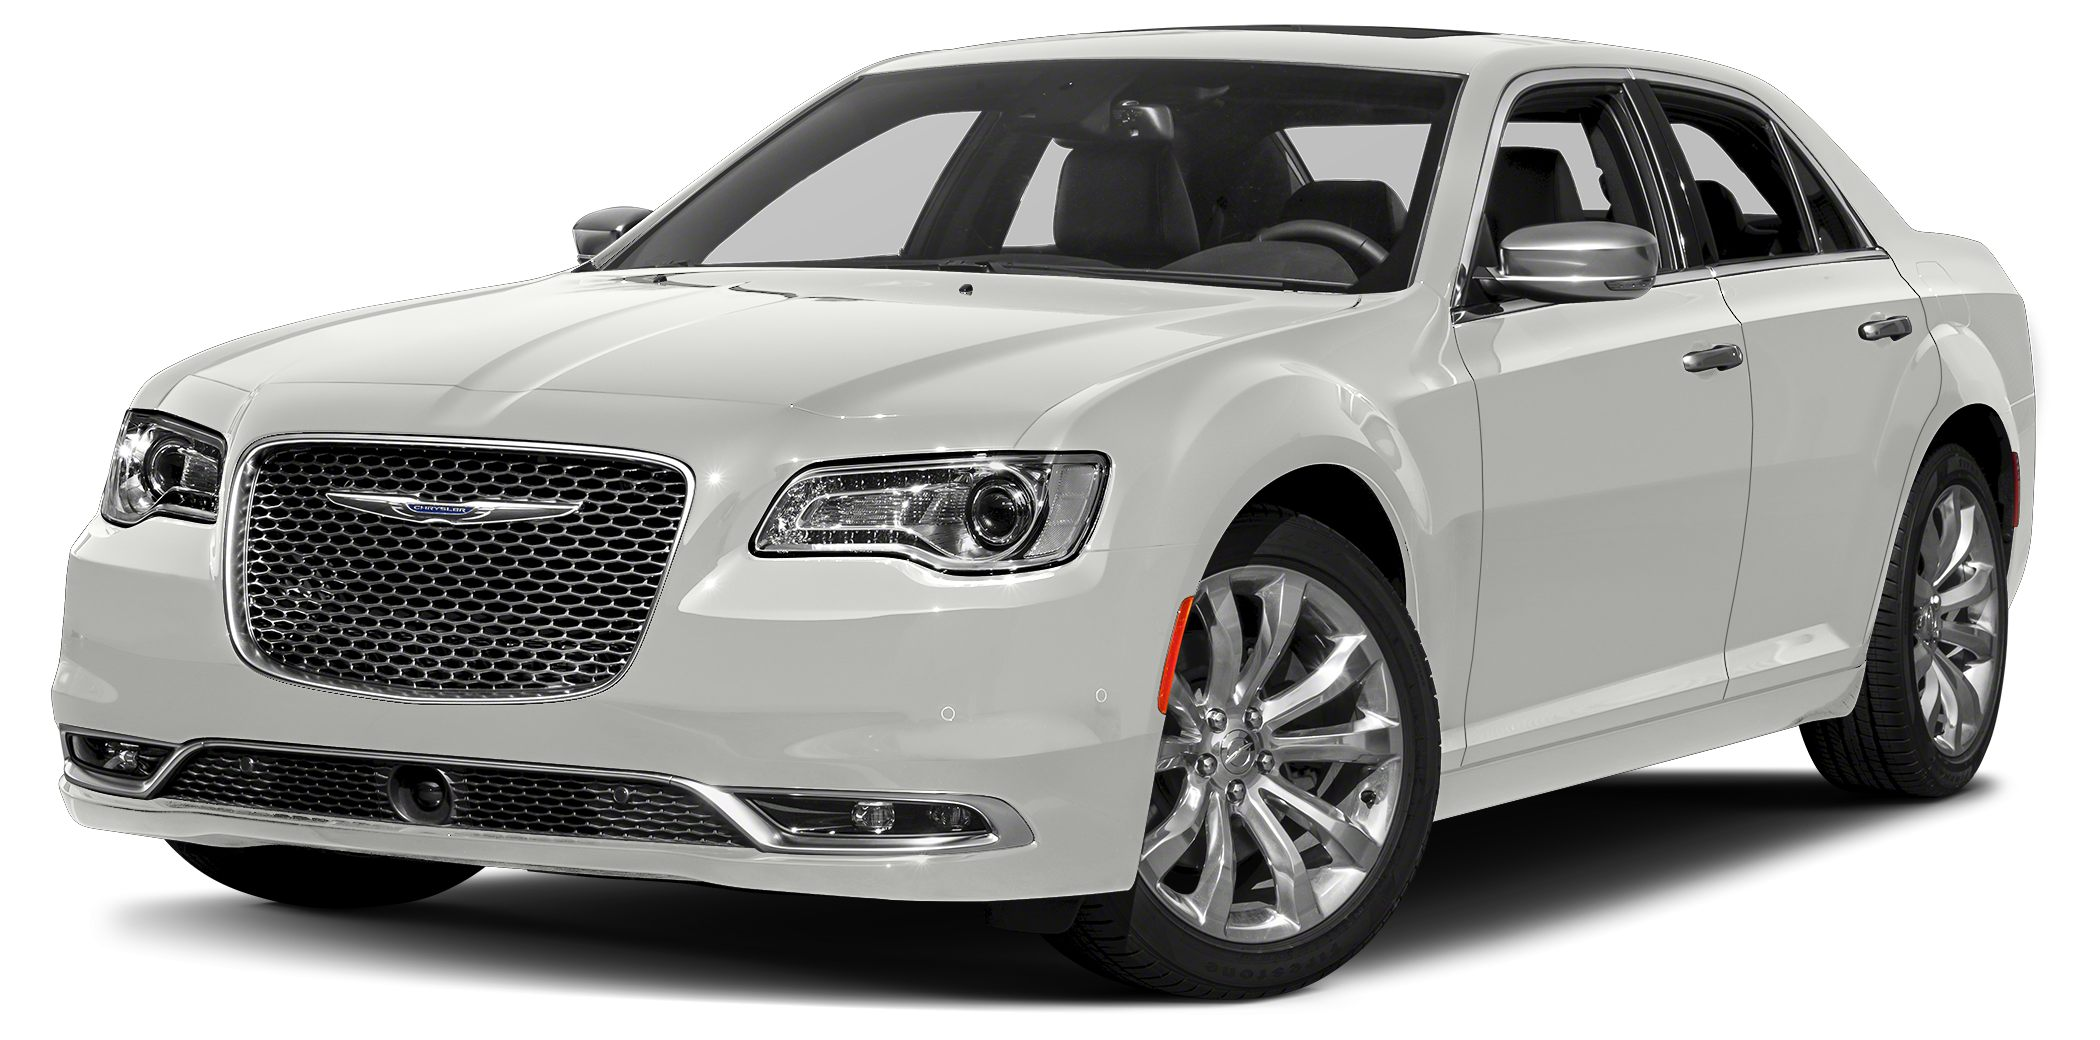 2015 Chrysler 300 Platinum Our Final Cost reflects all applicable manufacturer rebates andor ince